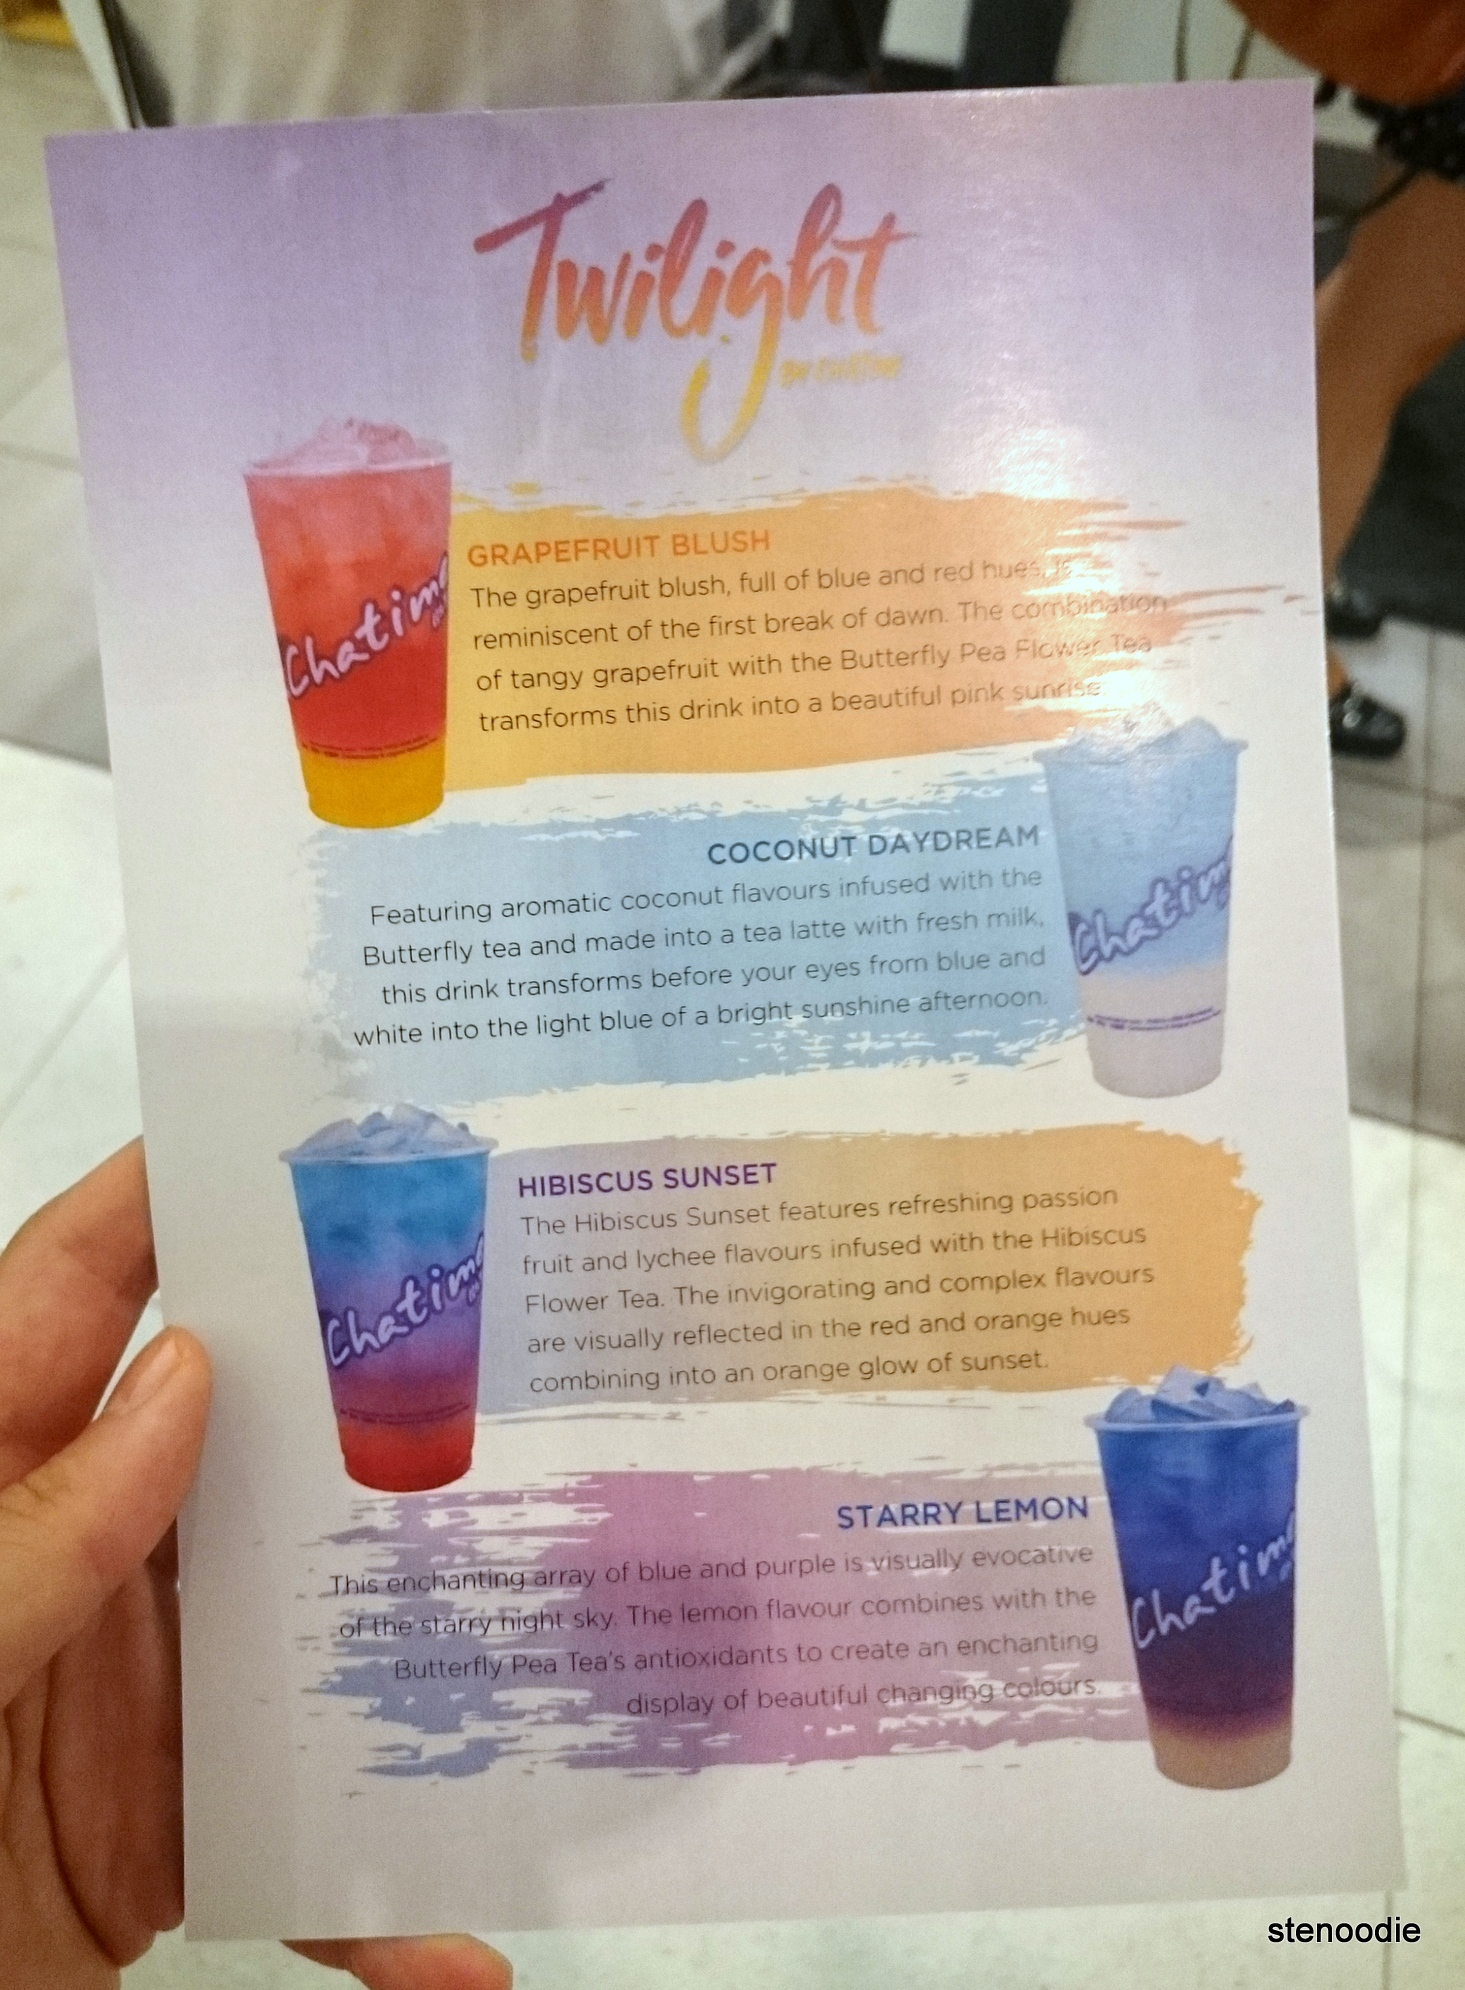 Twilight by Chatime